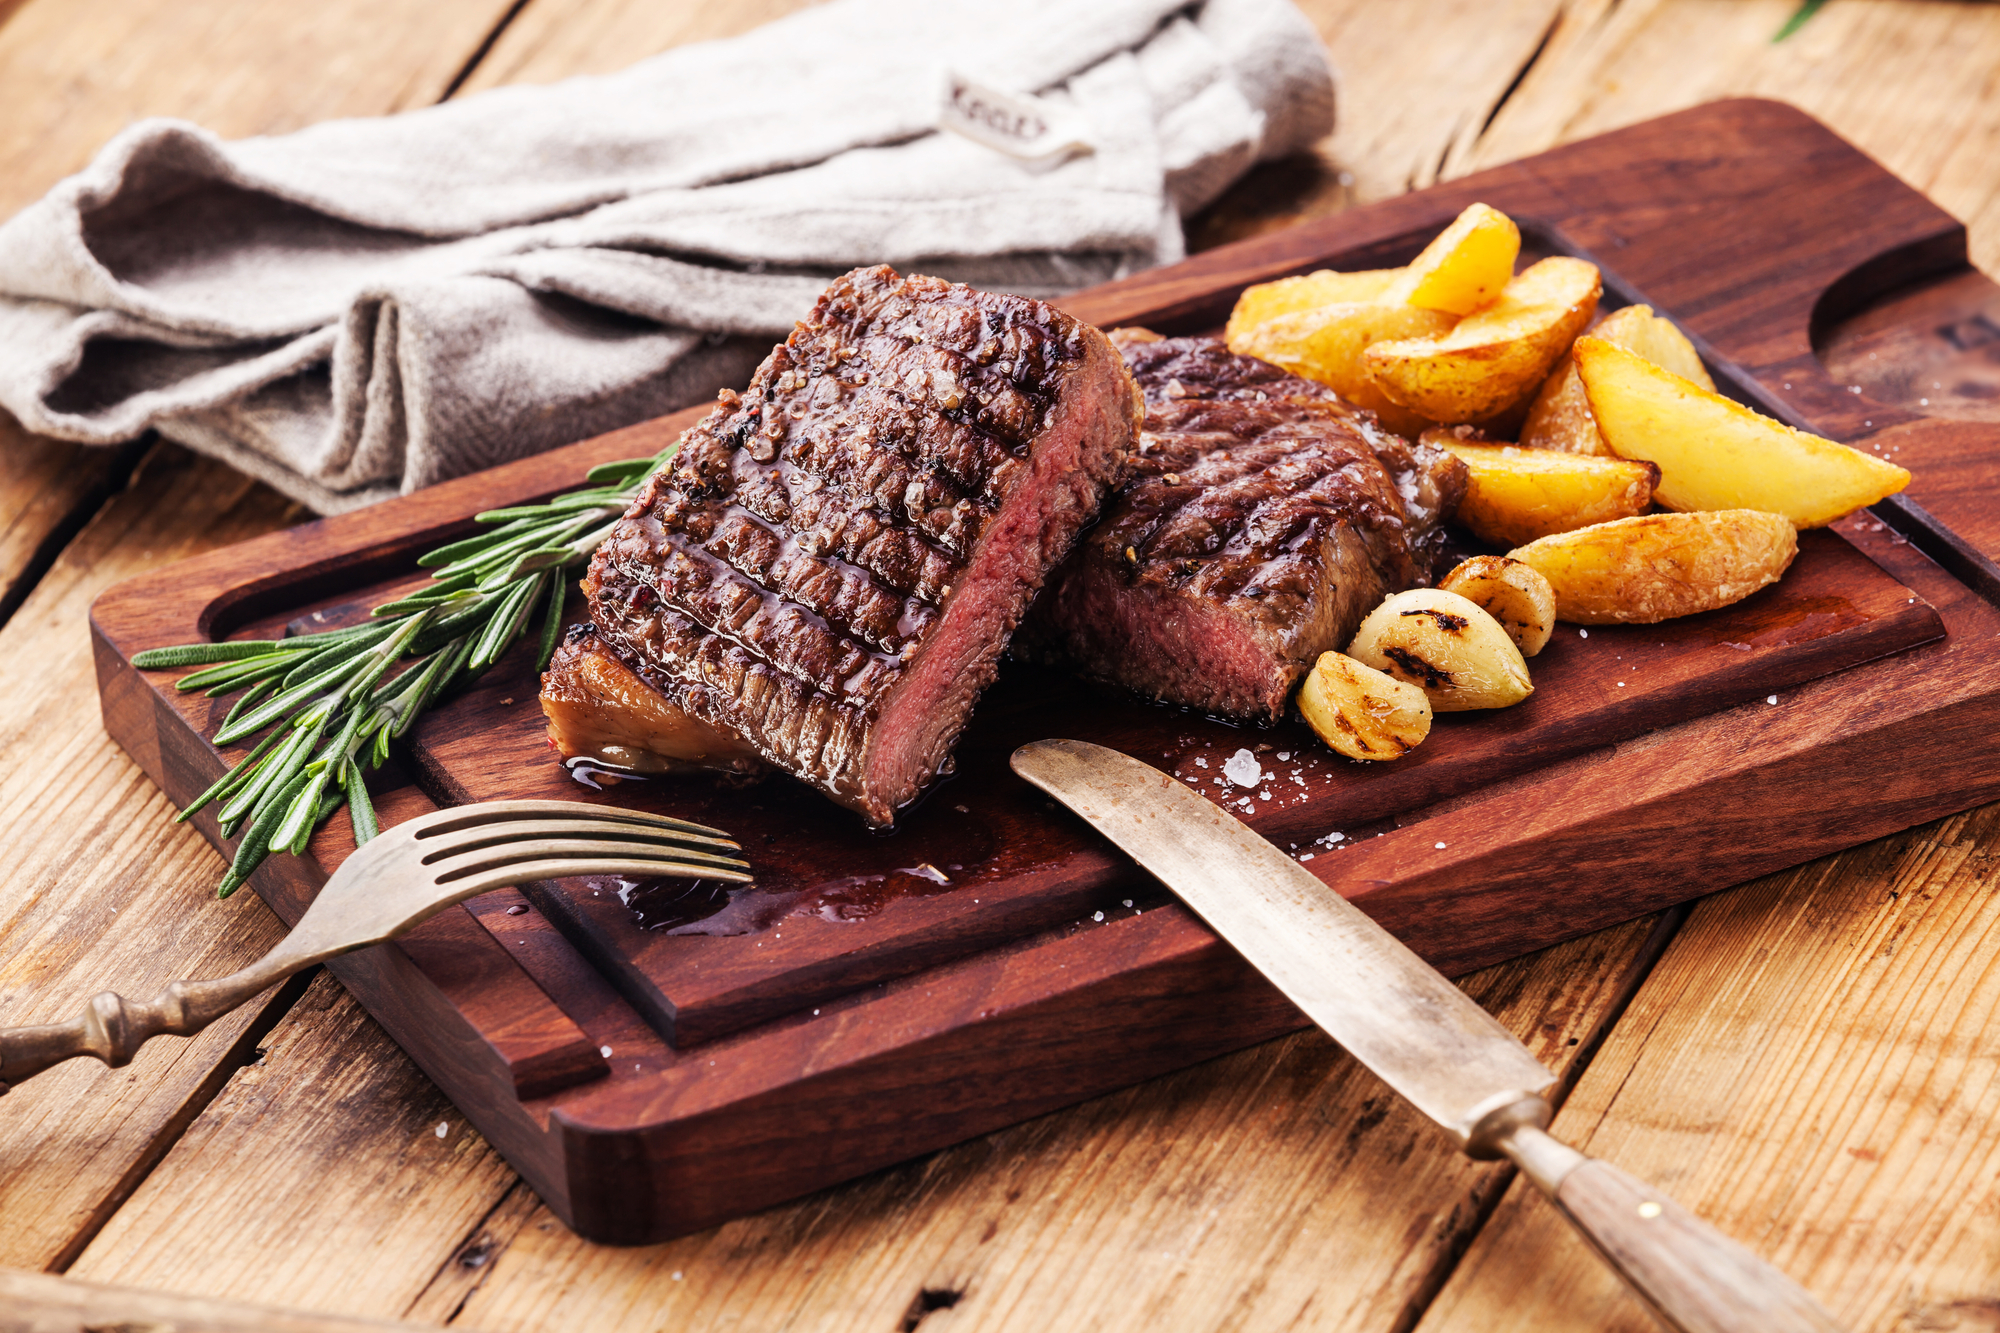 TMAO, a metabolite produced by the microbiome and liver after eating animal proteins such as red meat, has been linked to age-related declines in cardiovascular health